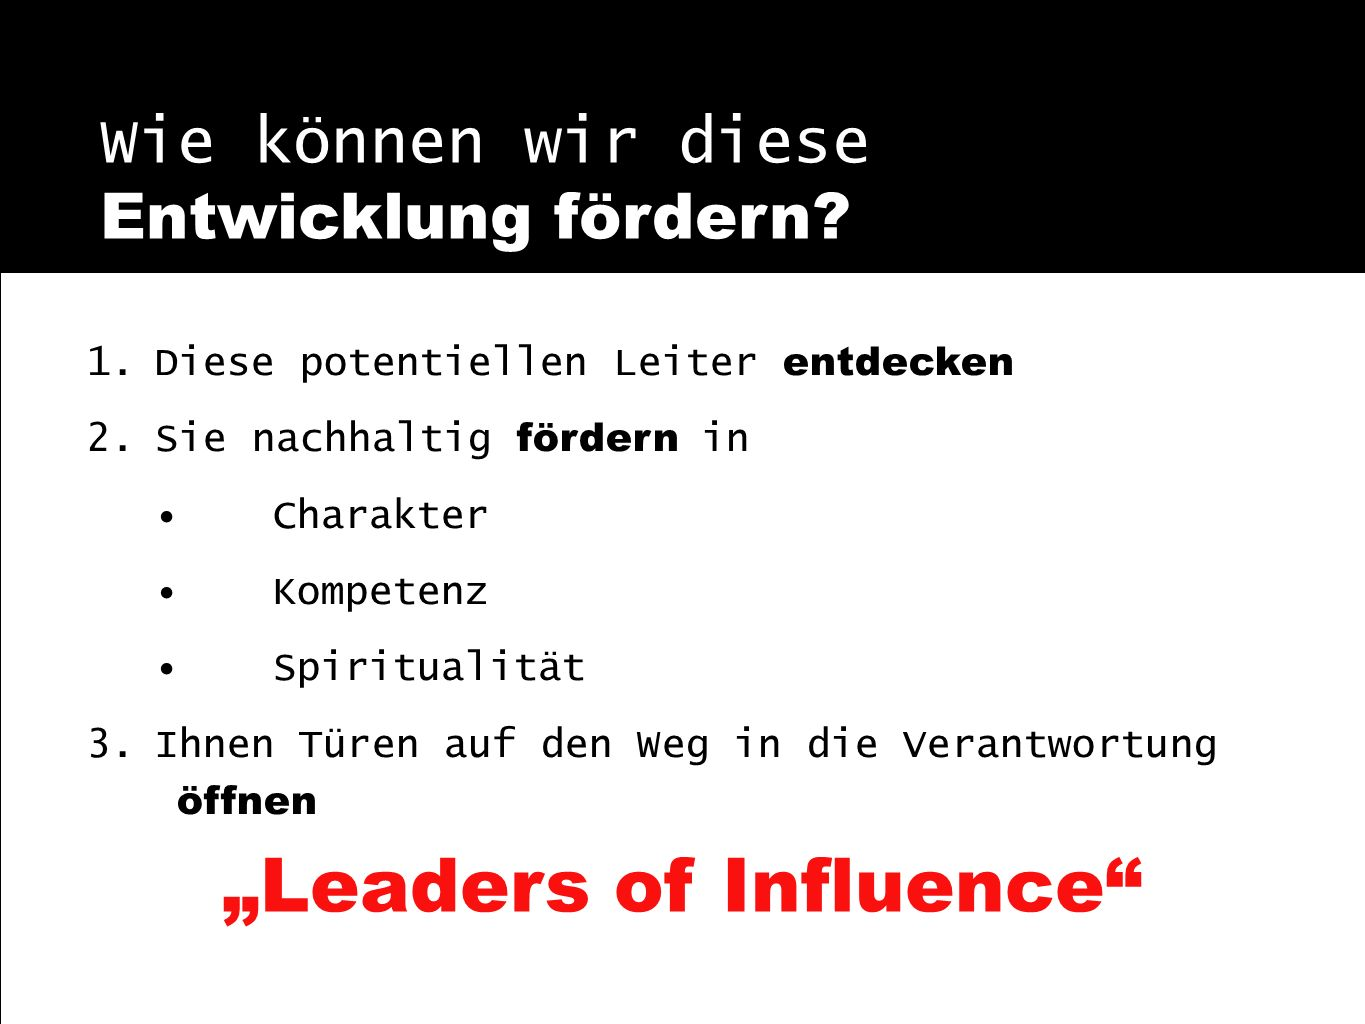 """Leaders of Influence"